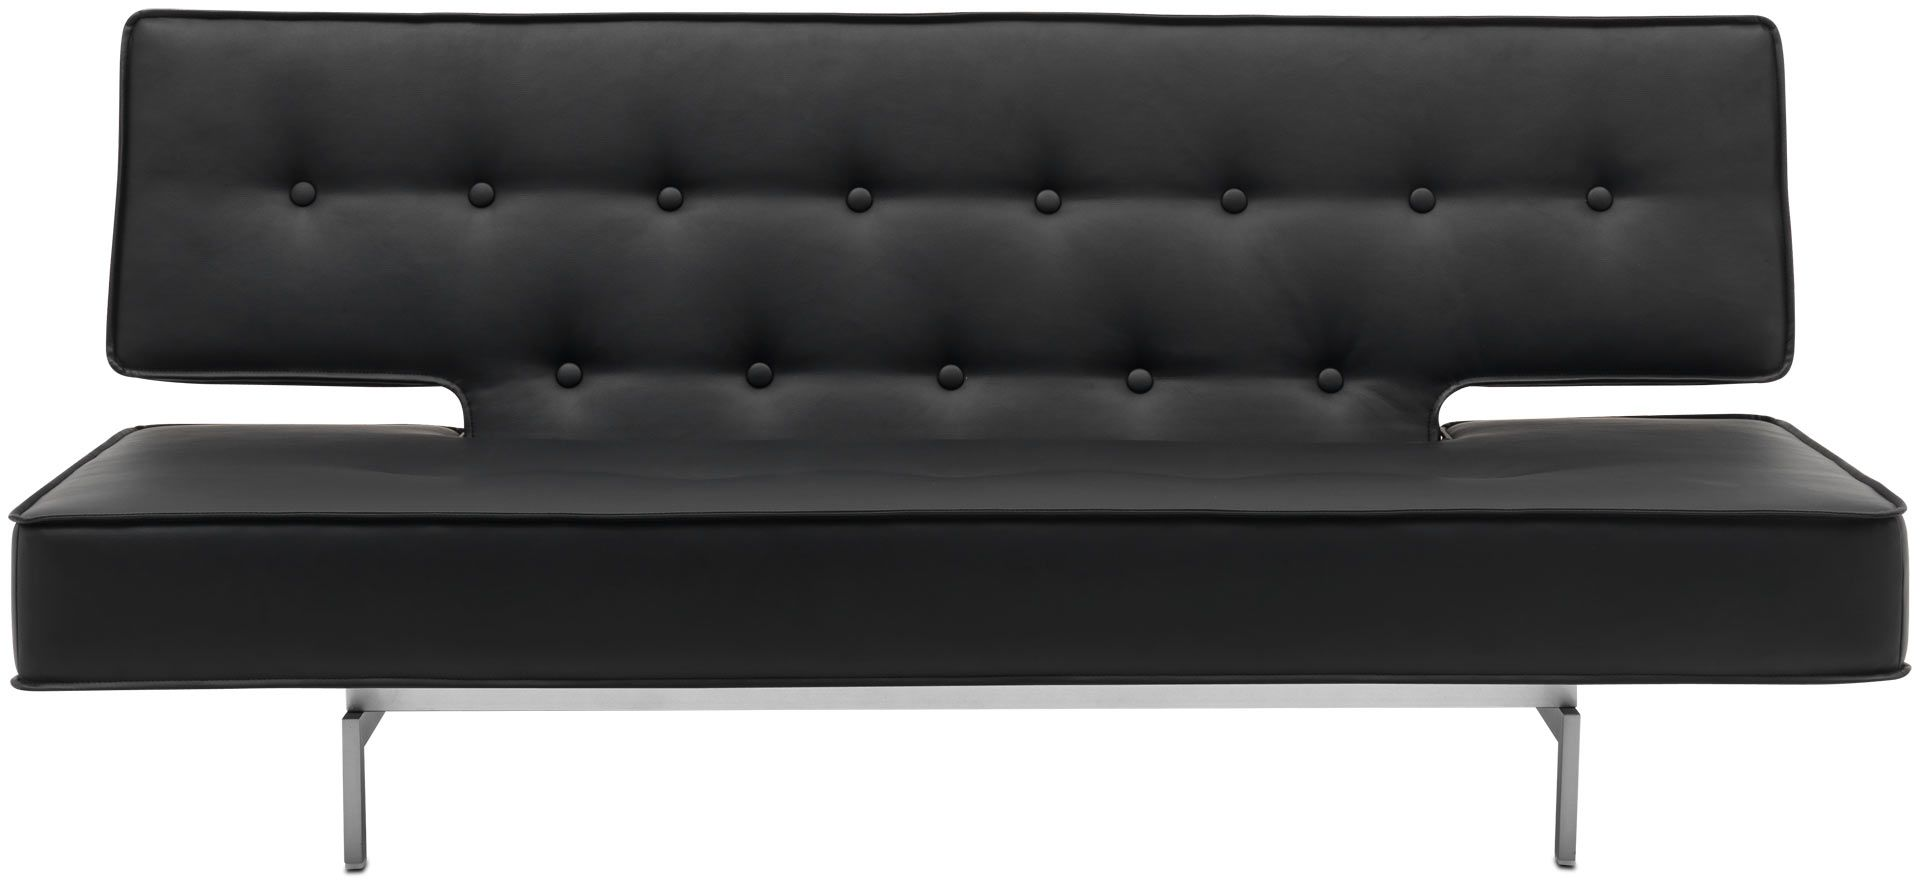 Modern Sofa Beds   Contemporary Sofa Beds   BoConcept   1395   Are They  Really A